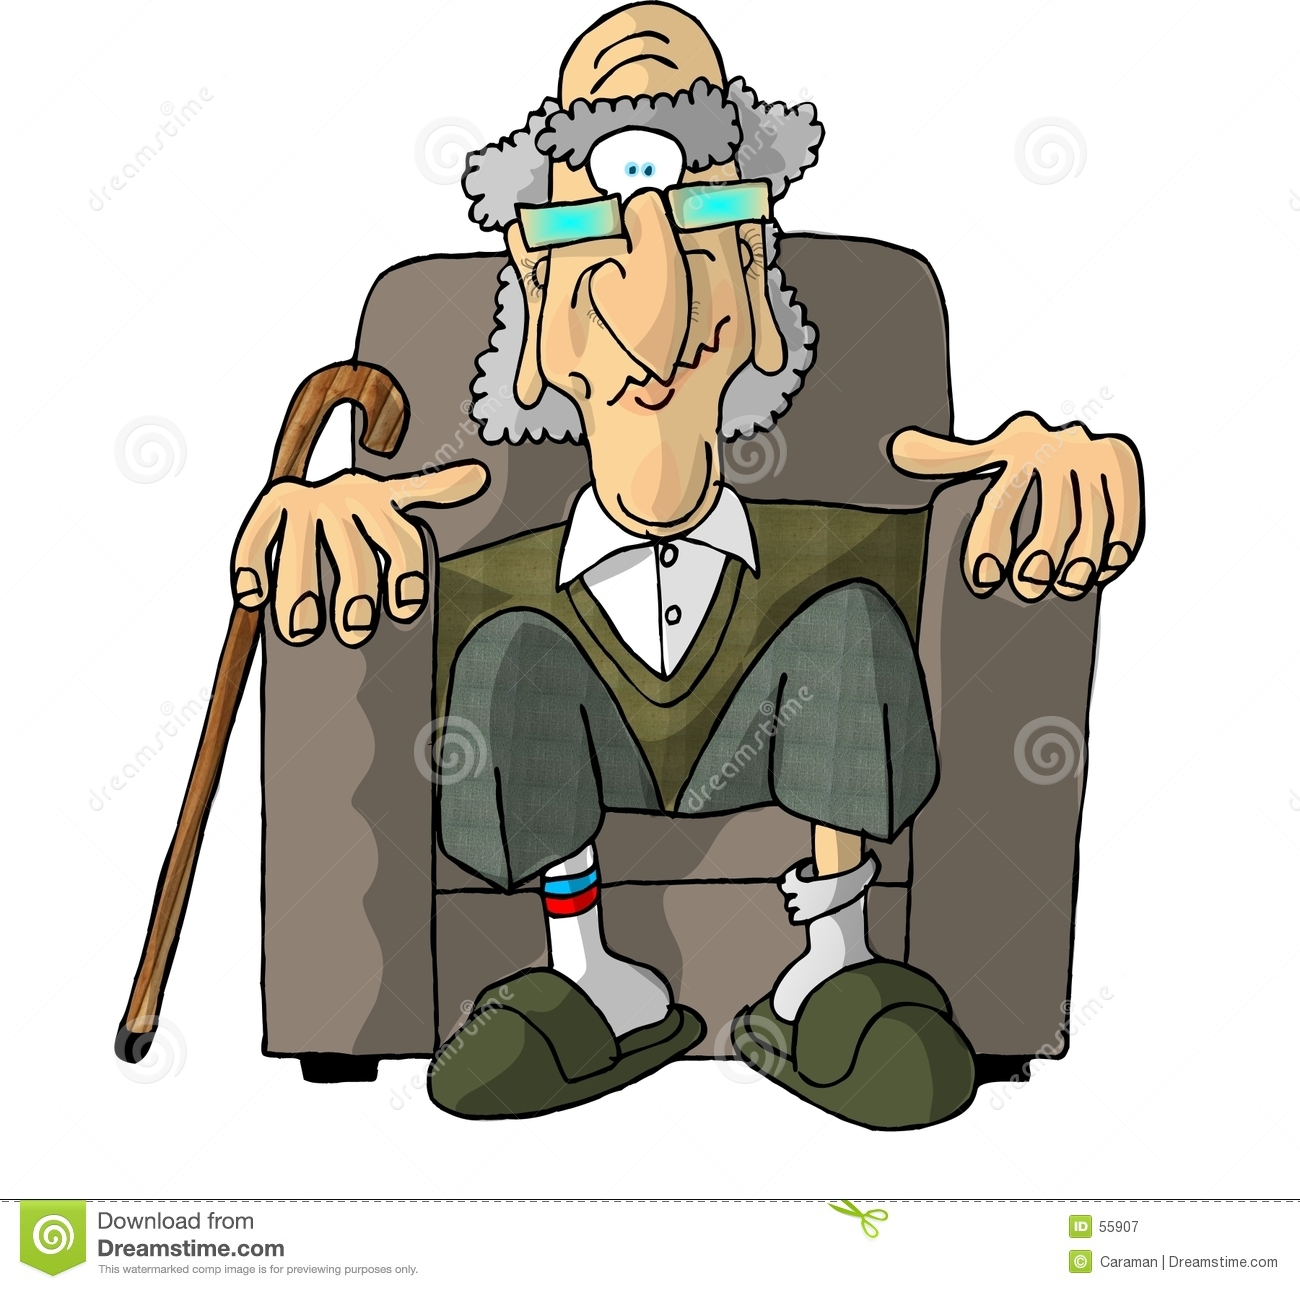 This illustration that I created depicts an old man sitting in a chair ...